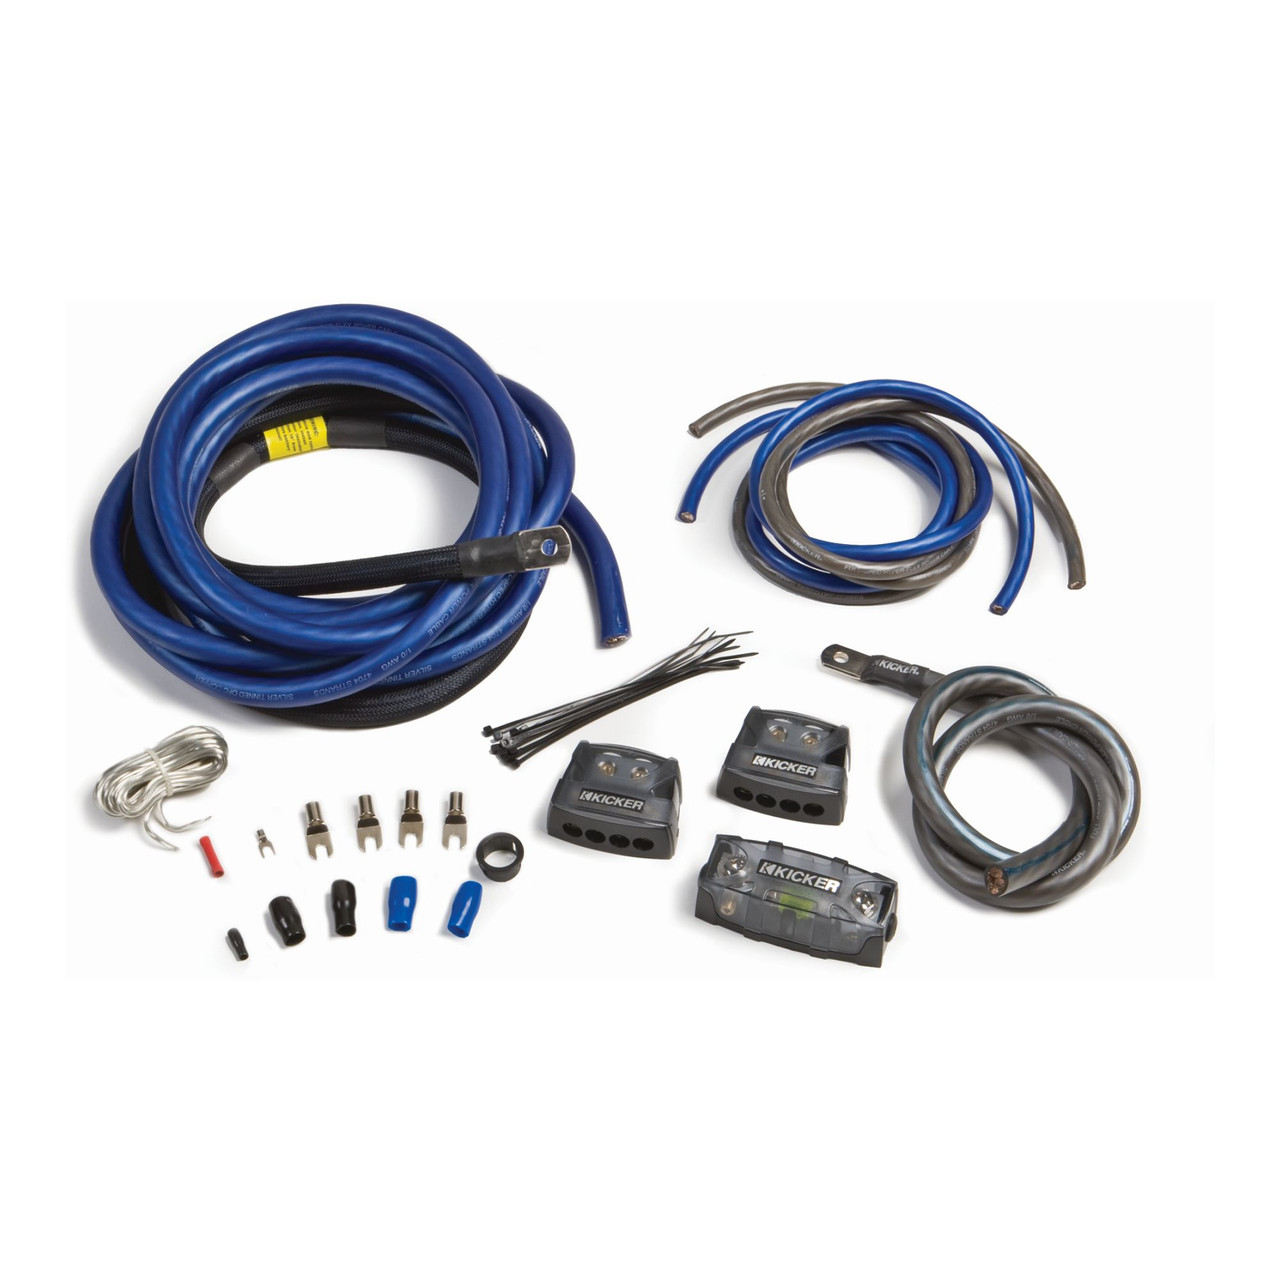 Kicker 46PKD1 PKD1 1/0AWG Dual Amplifier Power Kit - Power, Ground,  Distribution Block, Remote Wire and Fuse Block